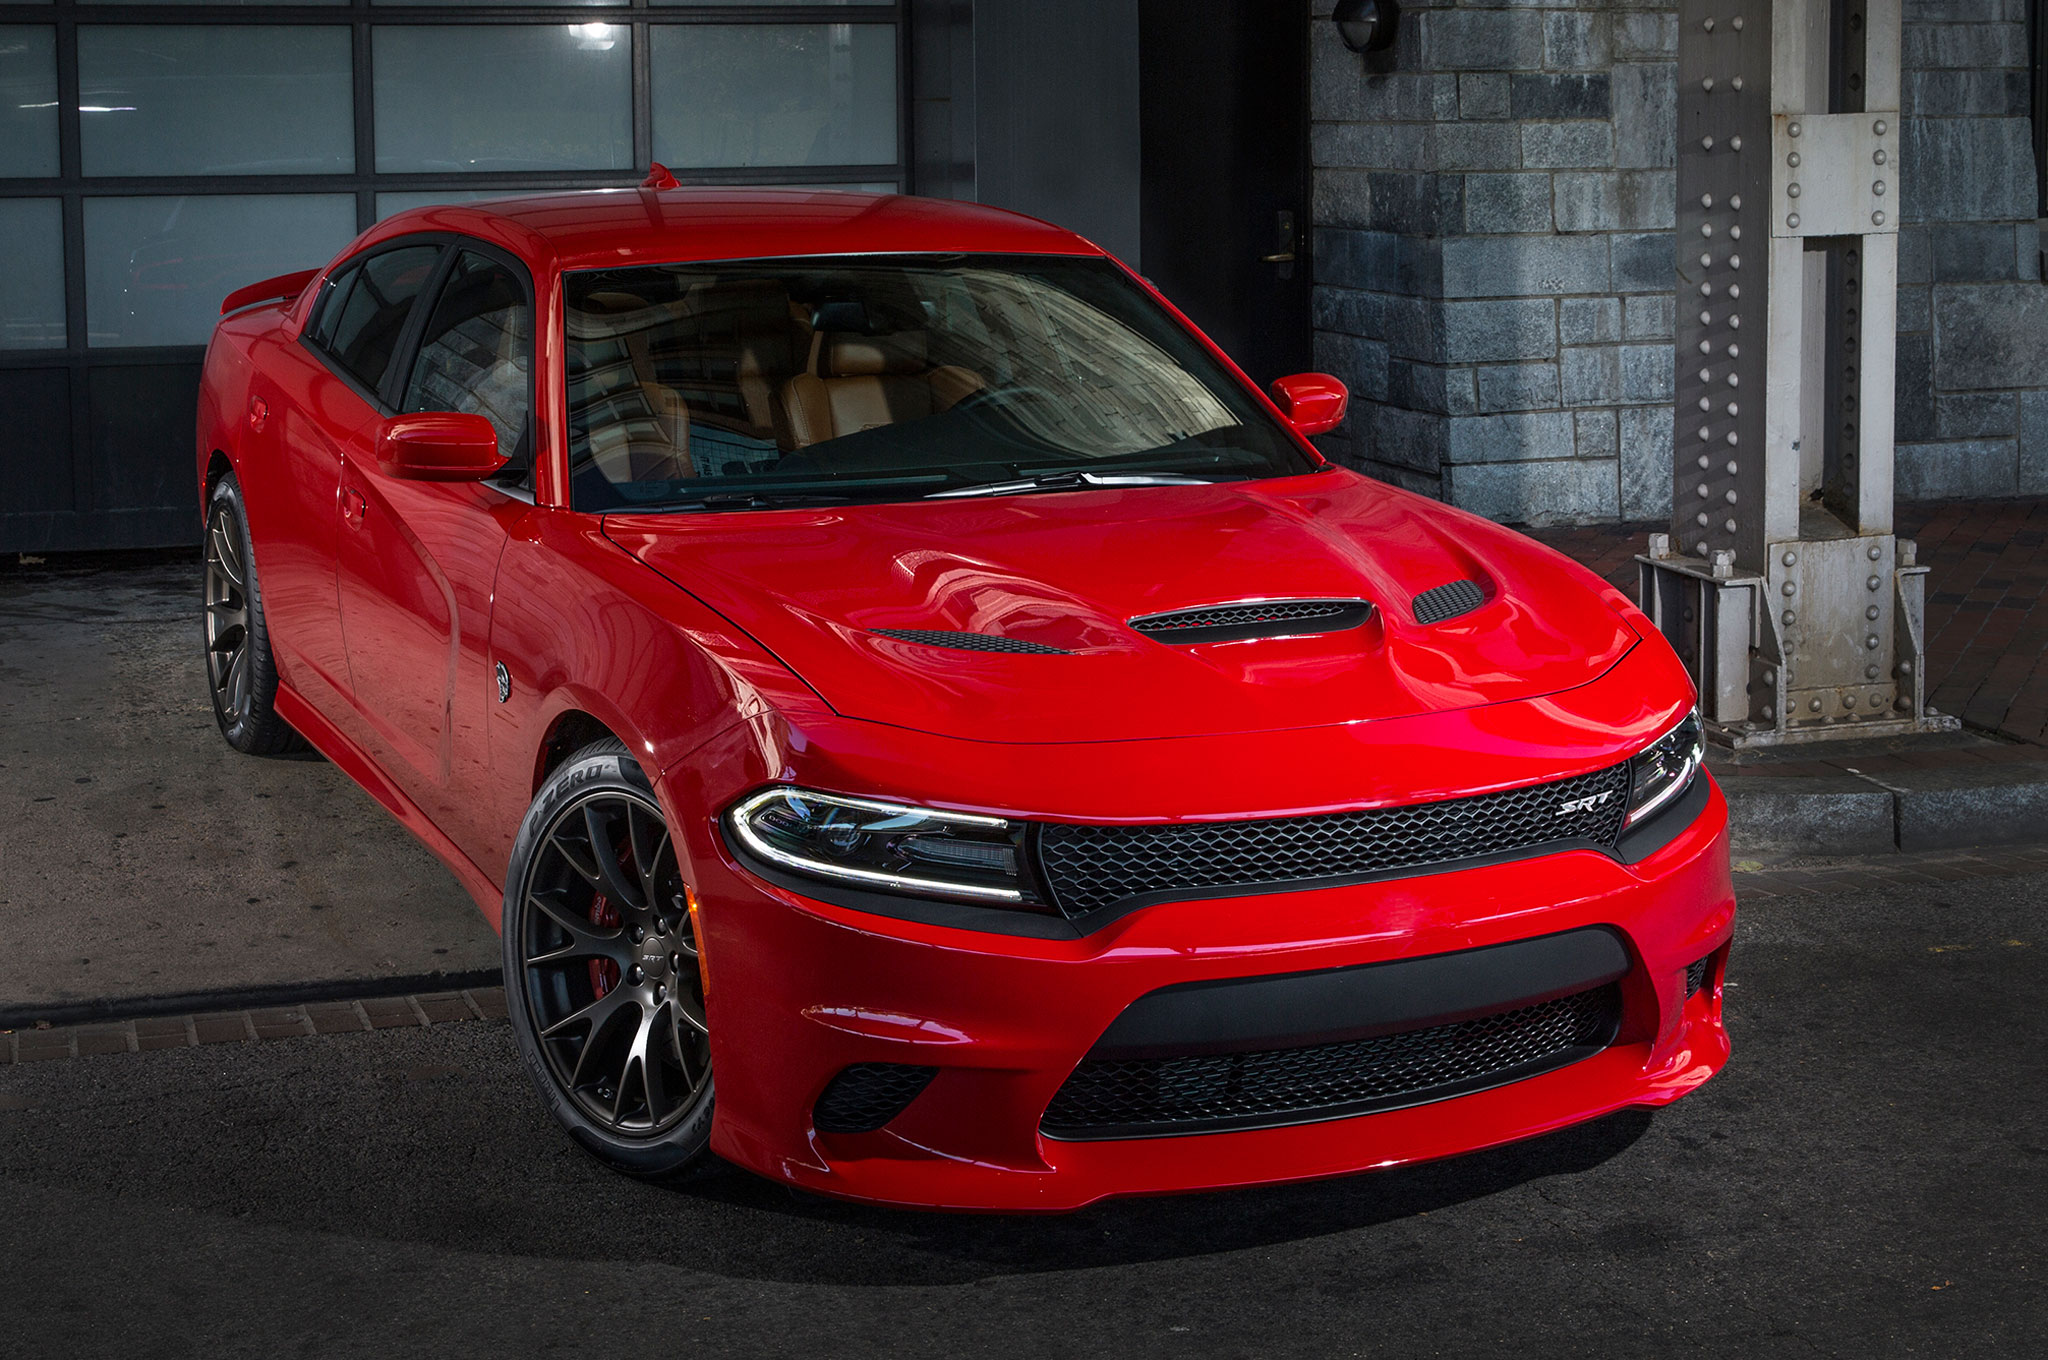 Dodge Charger Hellcat Price >> 2015 Dodge Charger Srt Hellcat Review